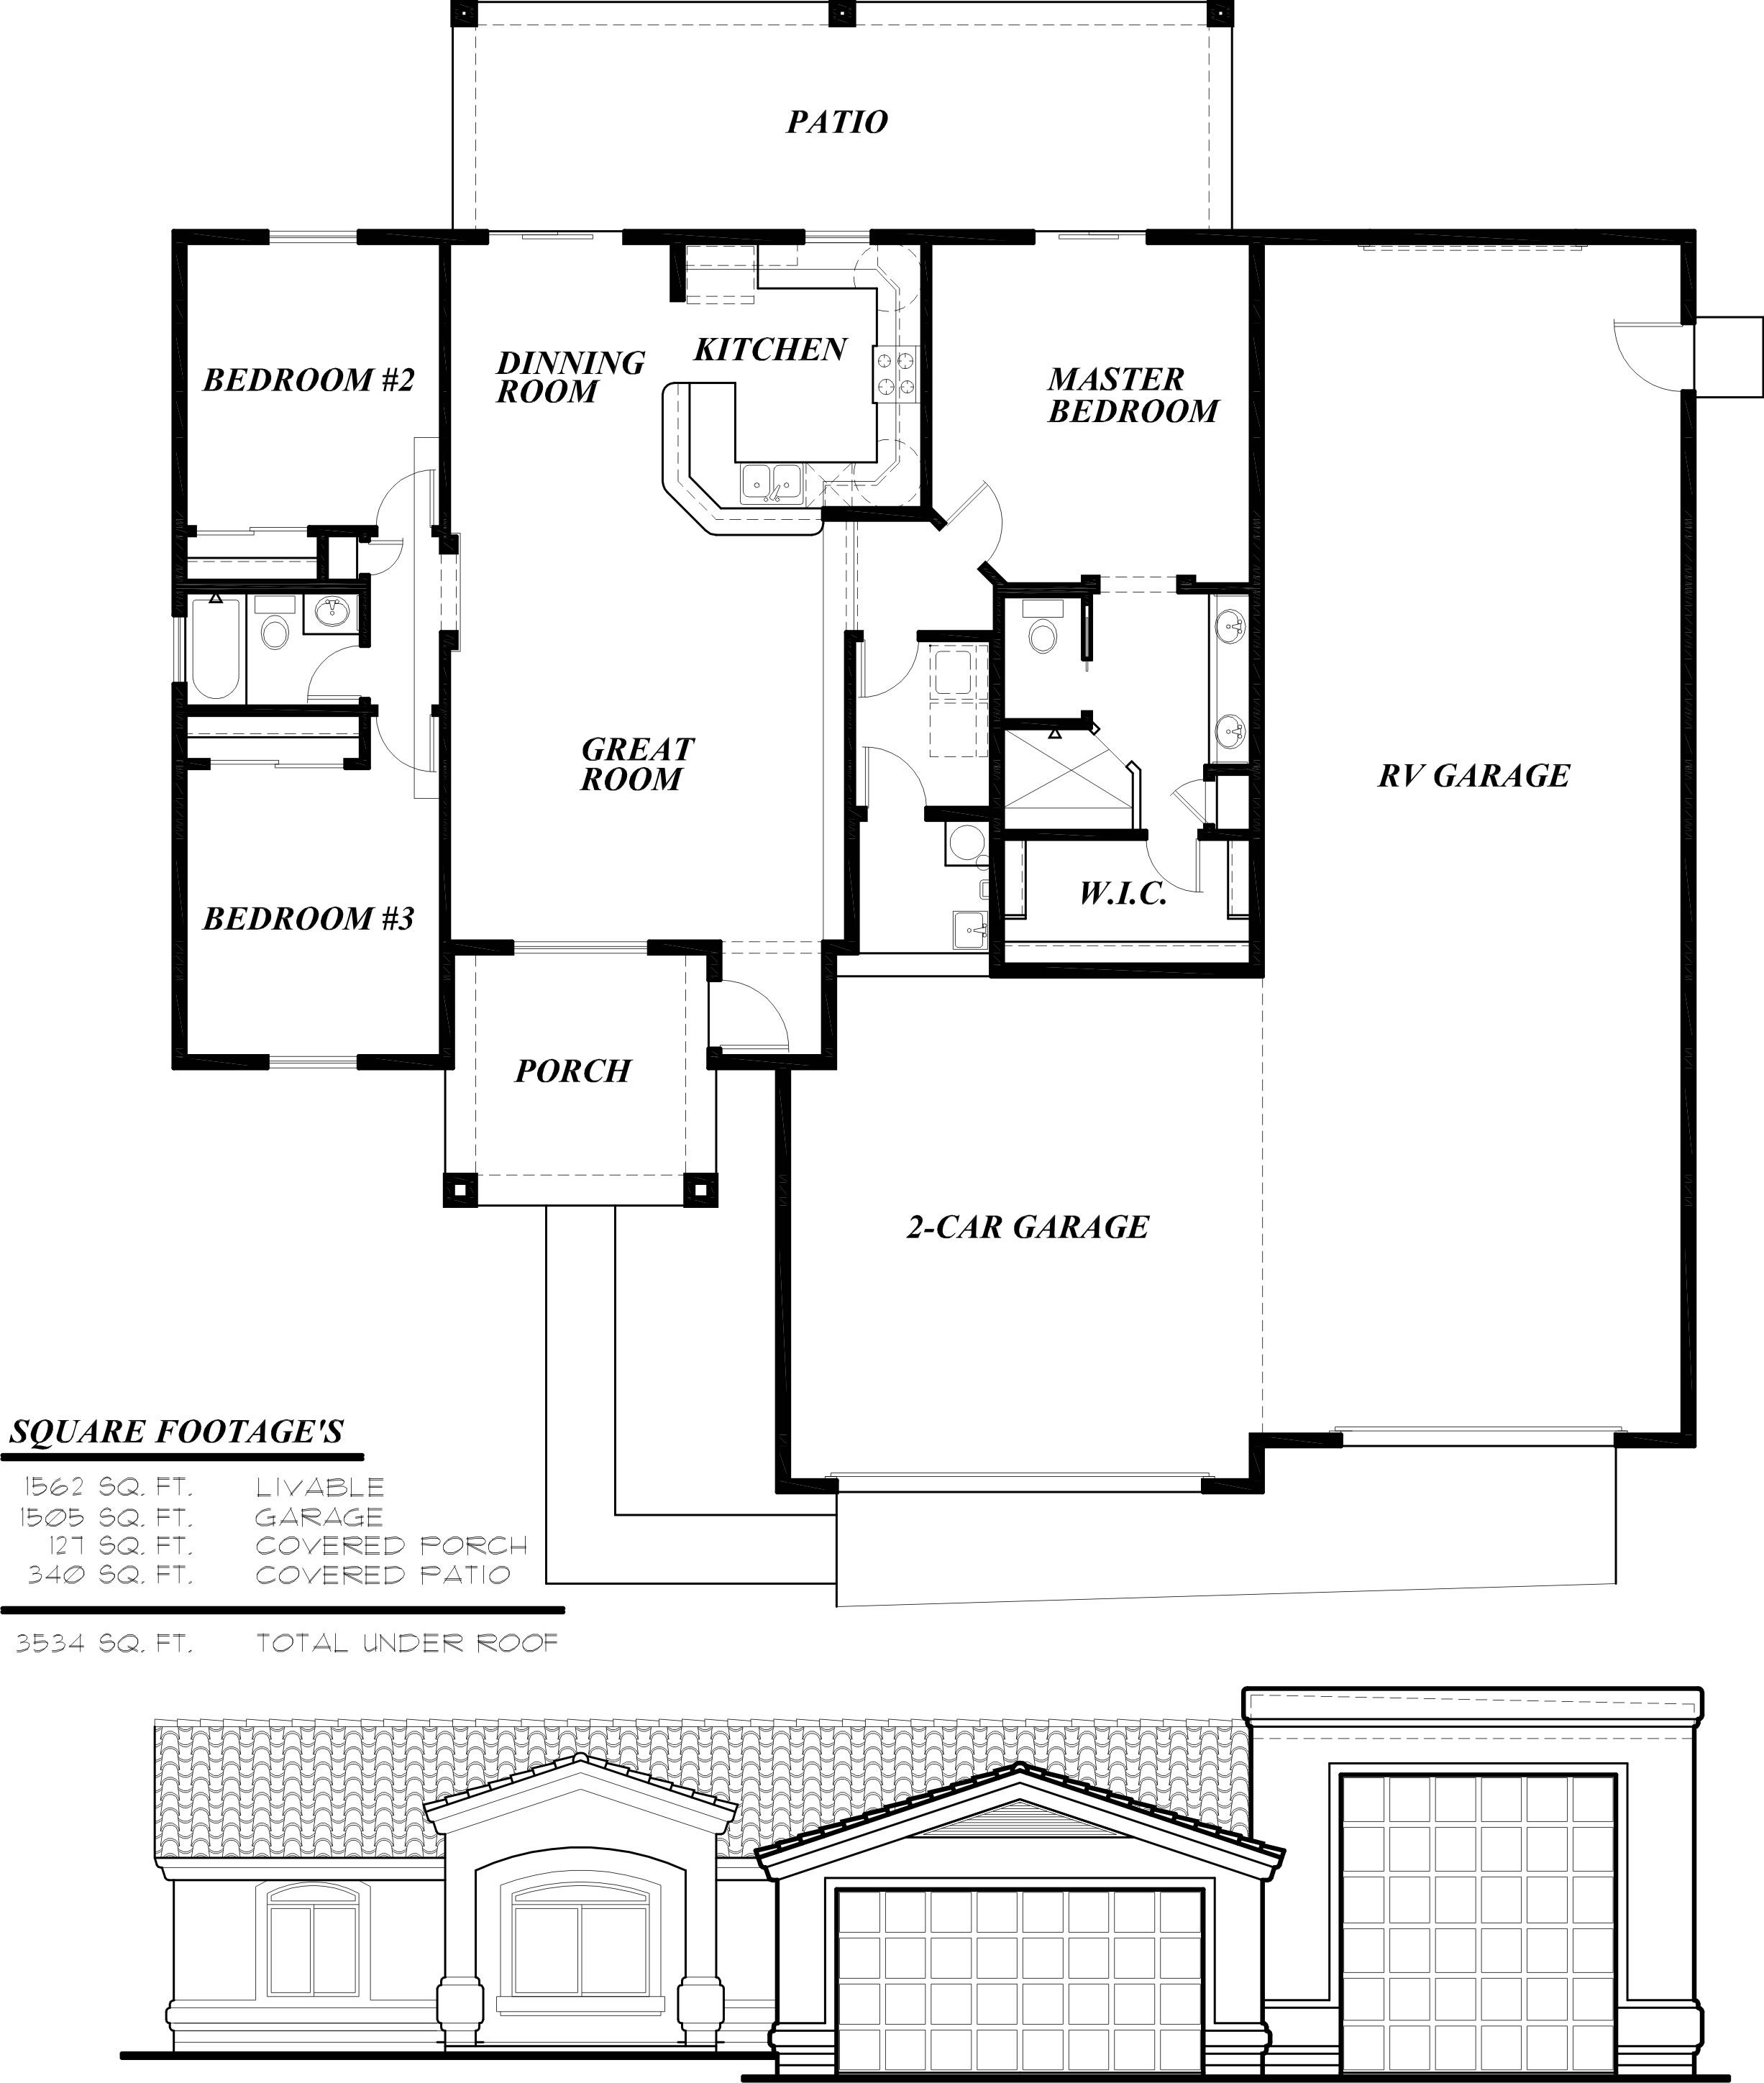 Amazing Rv Garage Floor Plans Home Design New Marvelous